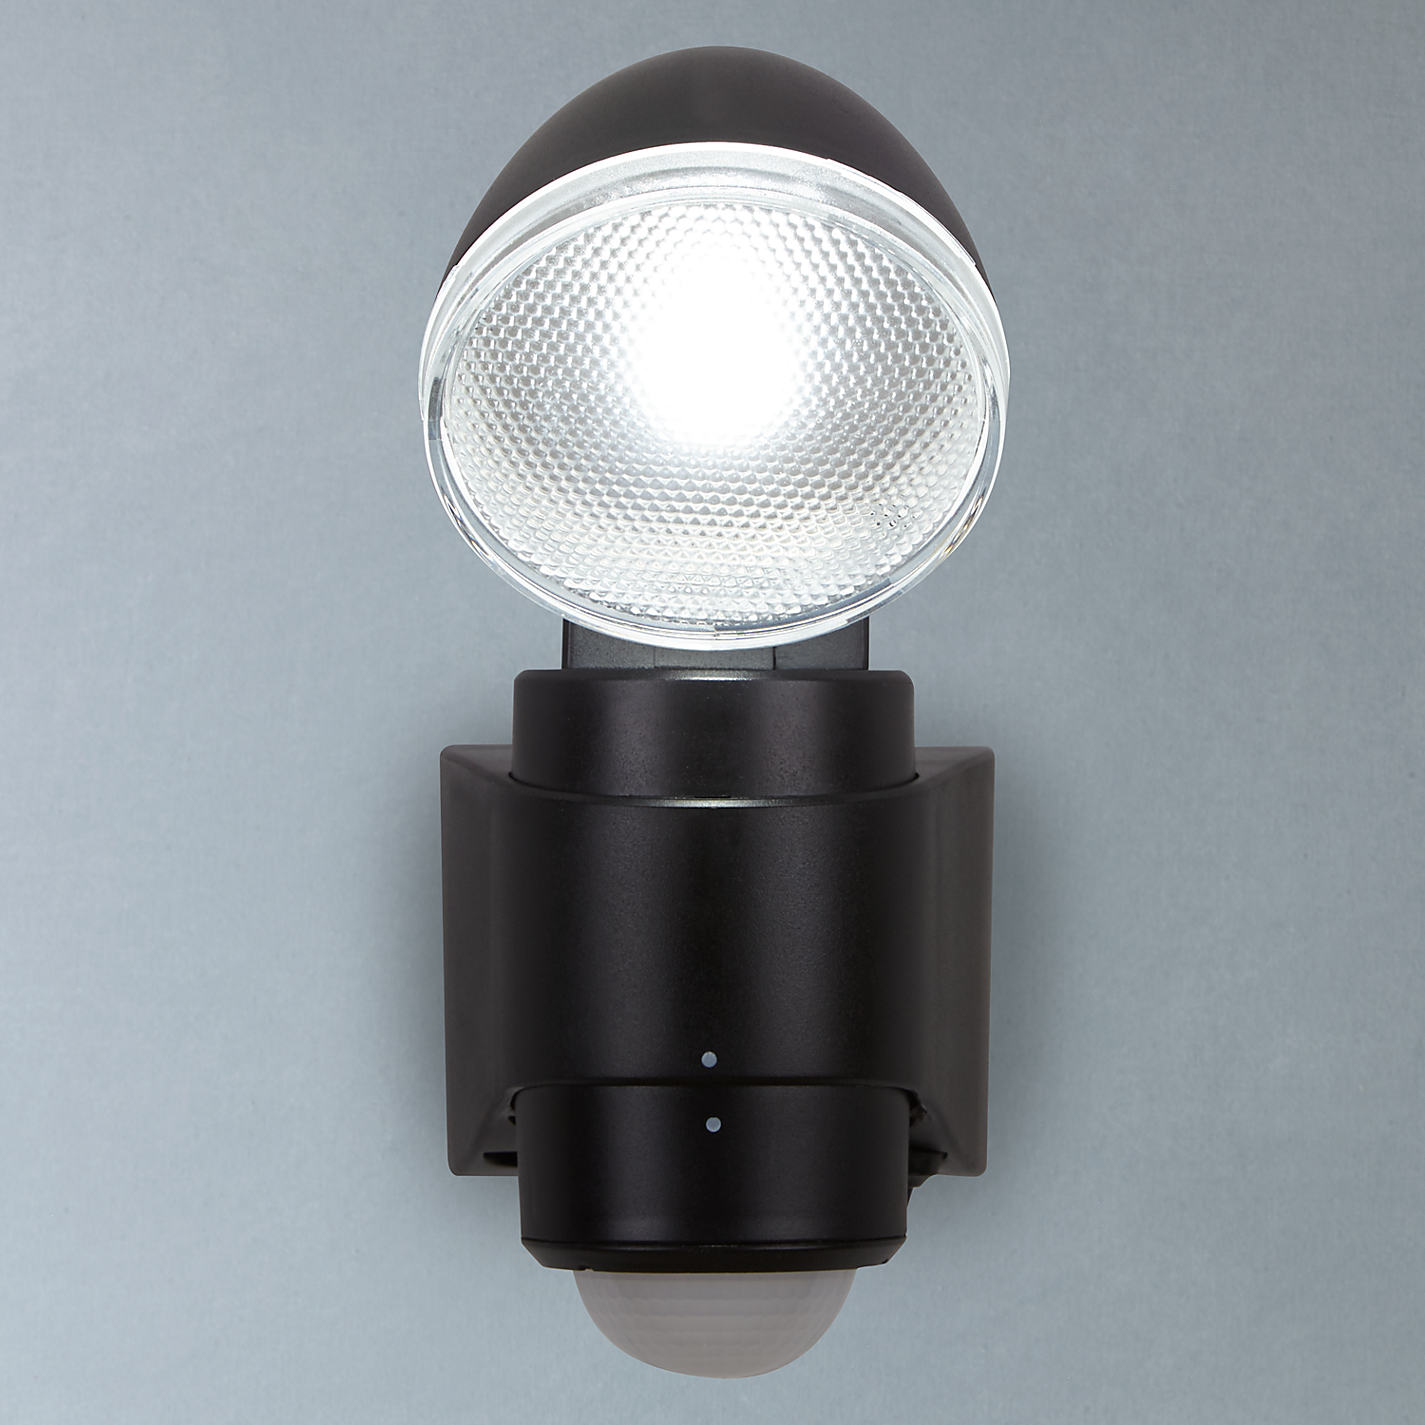 Buy saxby laryn led battery operated outdoor spotlight with pir buy saxby laryn led battery operated outdoor spotlight with pir black online at johnlewis mozeypictures Choice Image